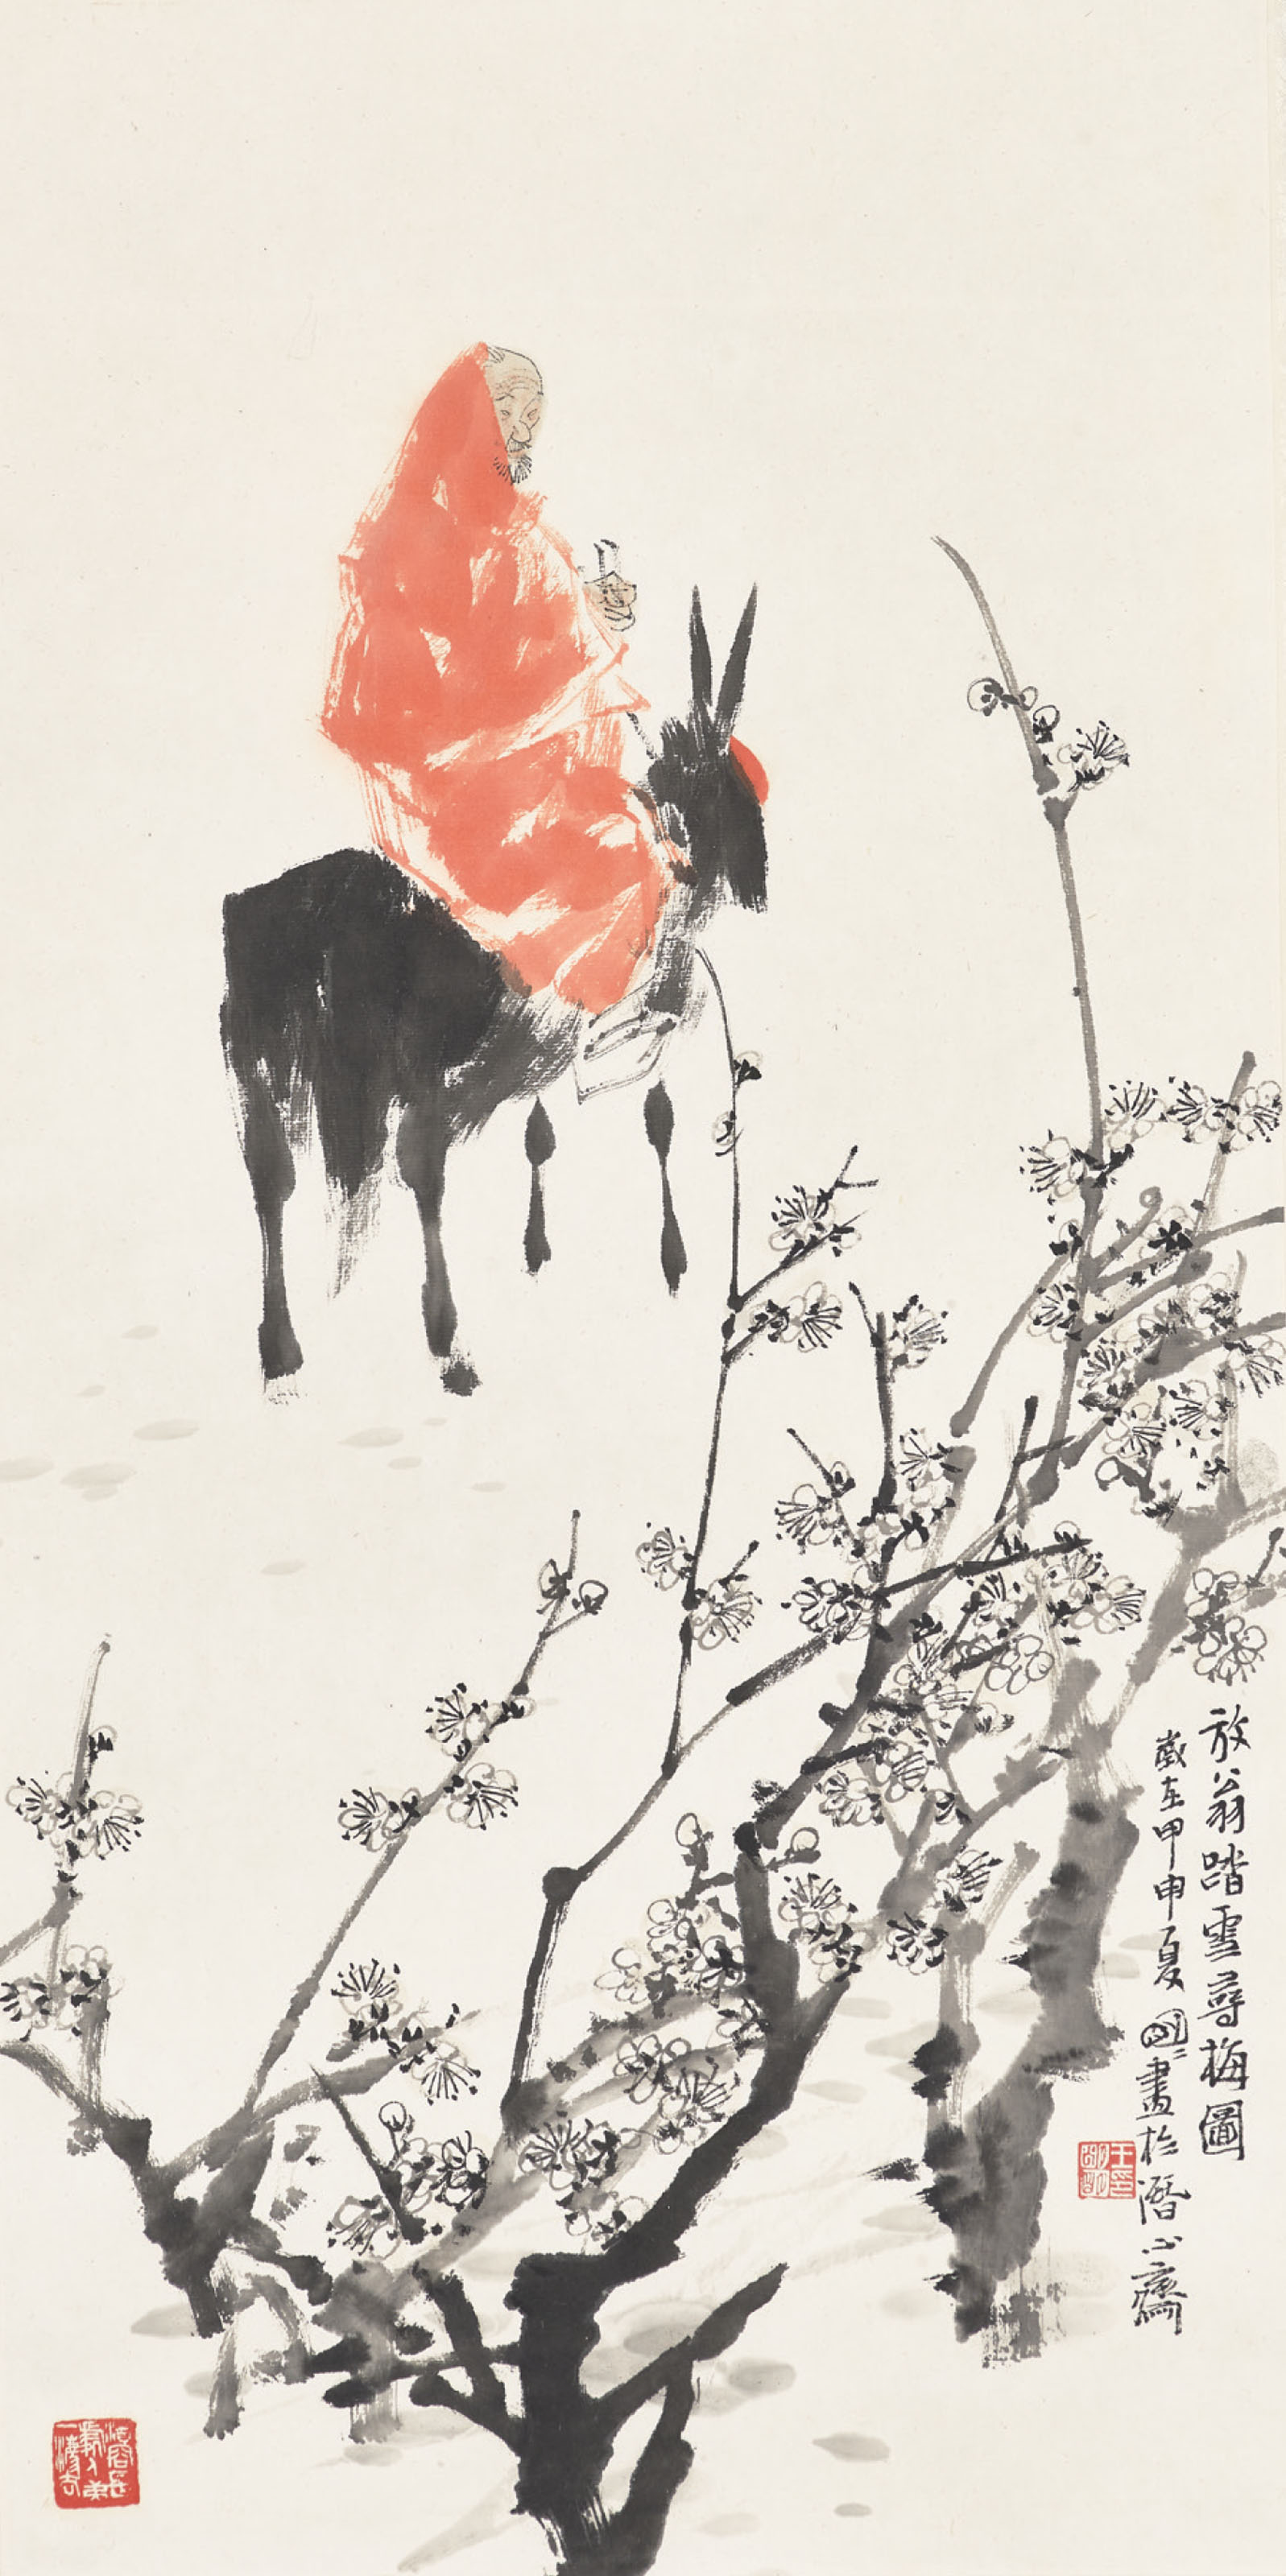 Searching for Plum Blossoms